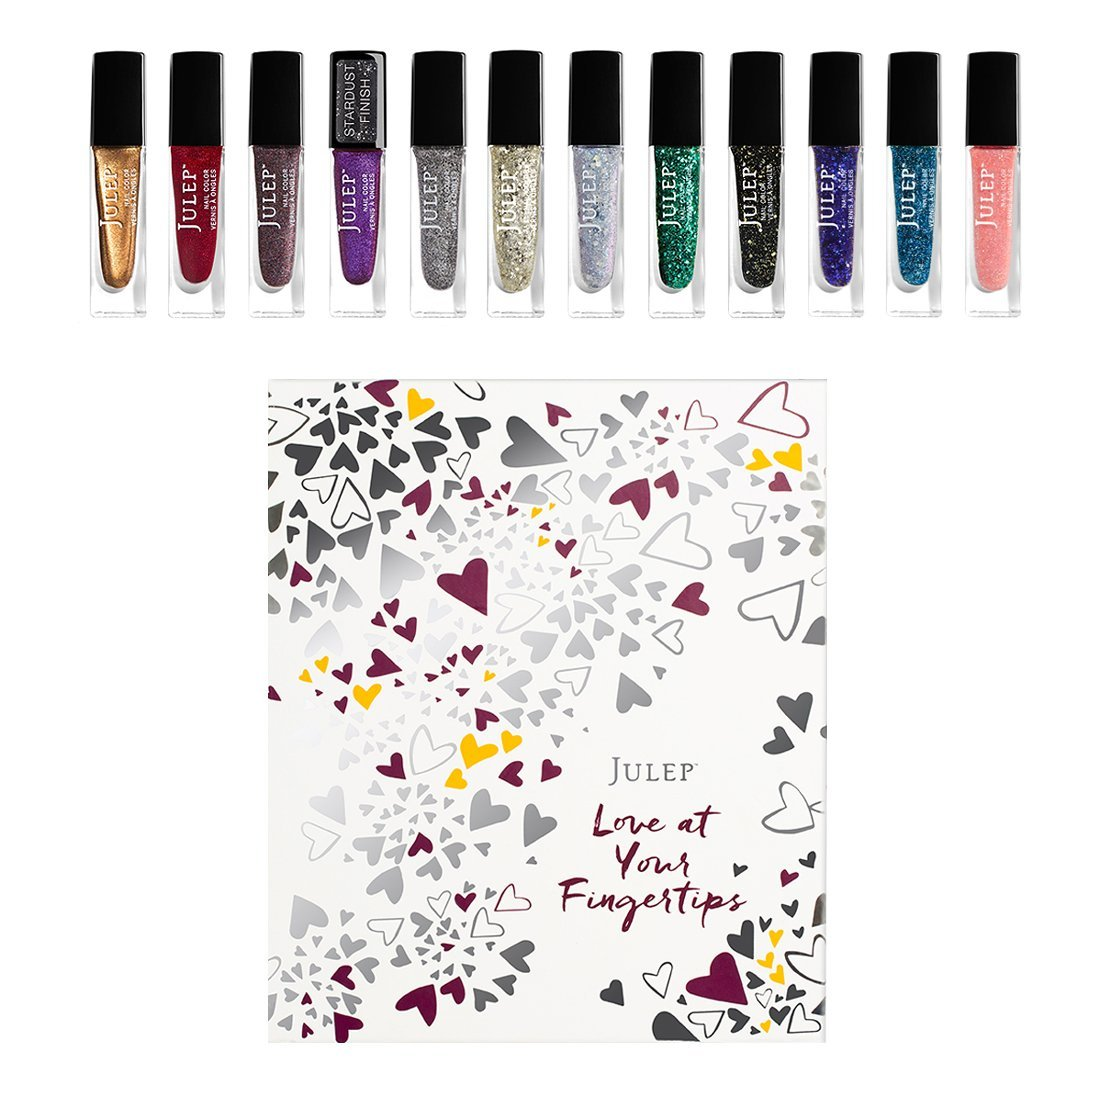 julep-gemstone-collection-2016-12-piece-nail-set-holographic-nail-polish